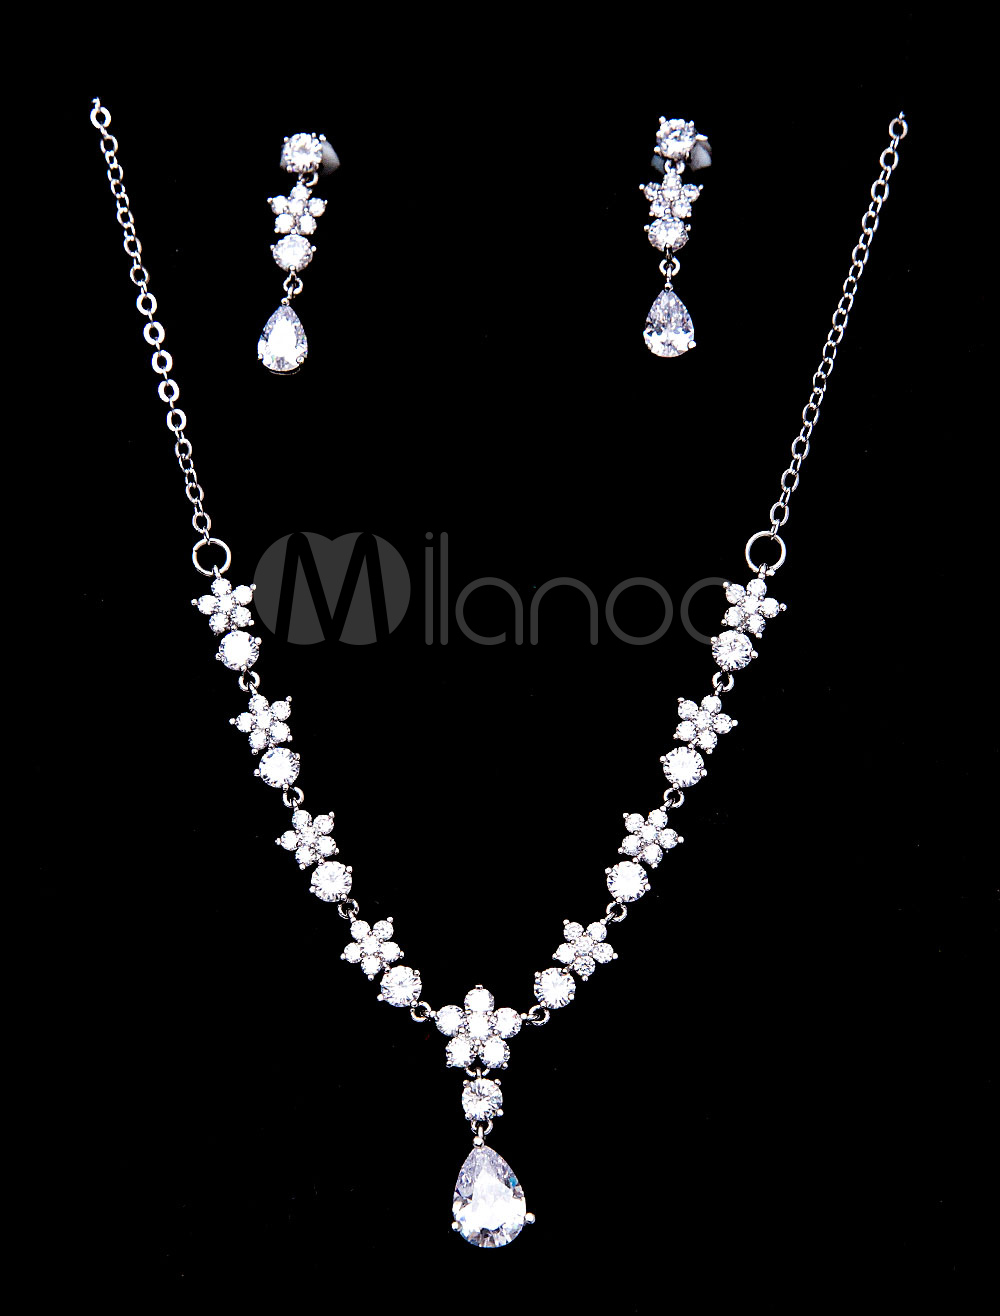 Buy Wedding Jewelry Set Silver Beaded Bridal Pendant Necklace With Clip On Earrings for $26.99 in Milanoo store